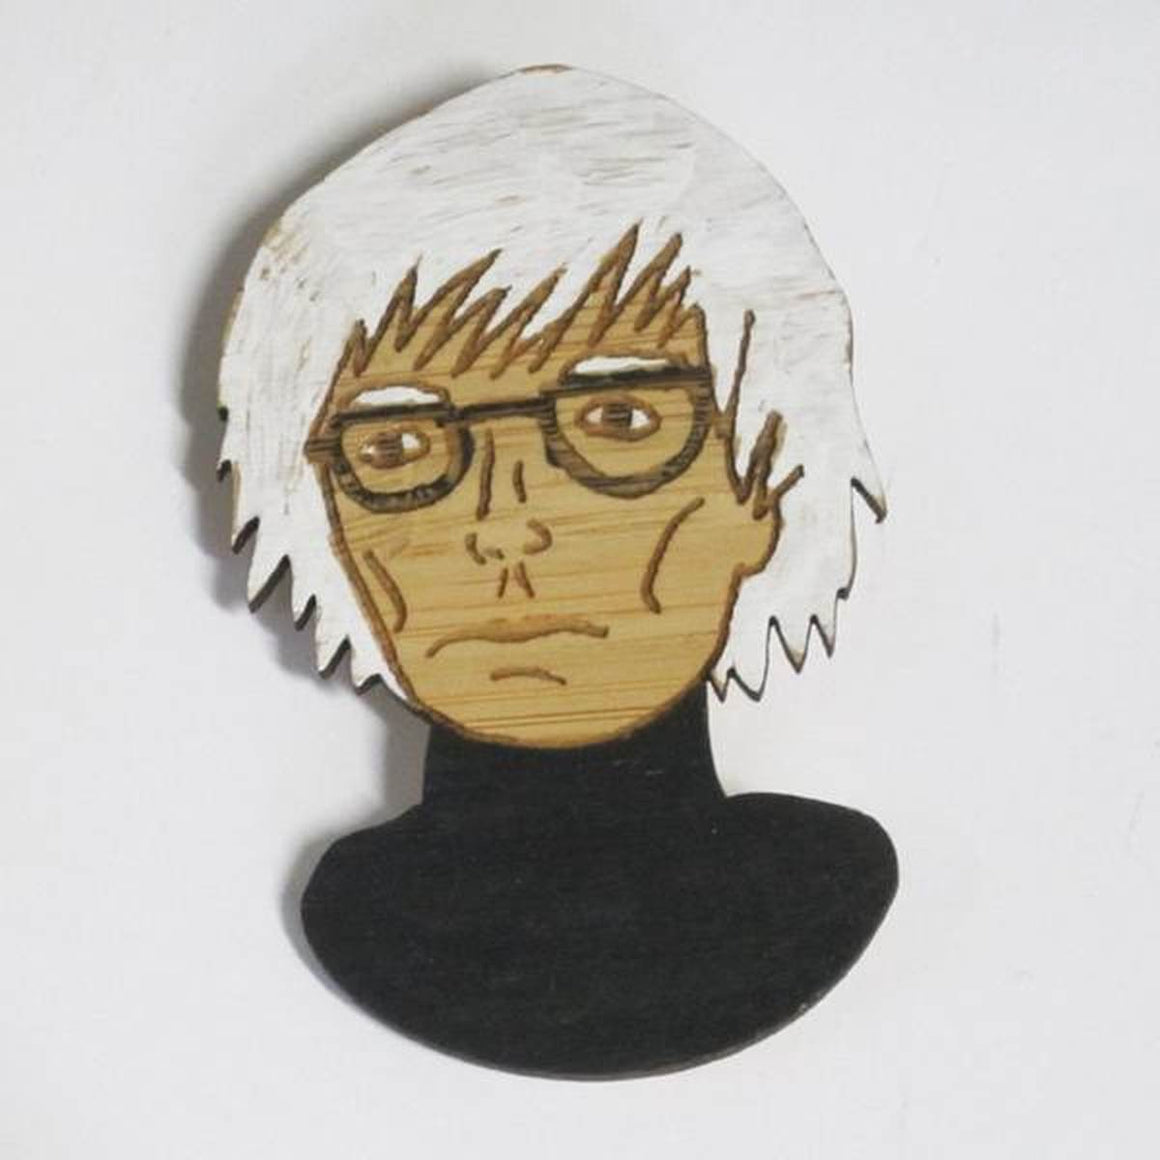 A brooch featuring a portrait of artist Andy Warhol. He is shown wearing a black turtleneck and his iconic glasses.Made from bamboo wood and hand painted.